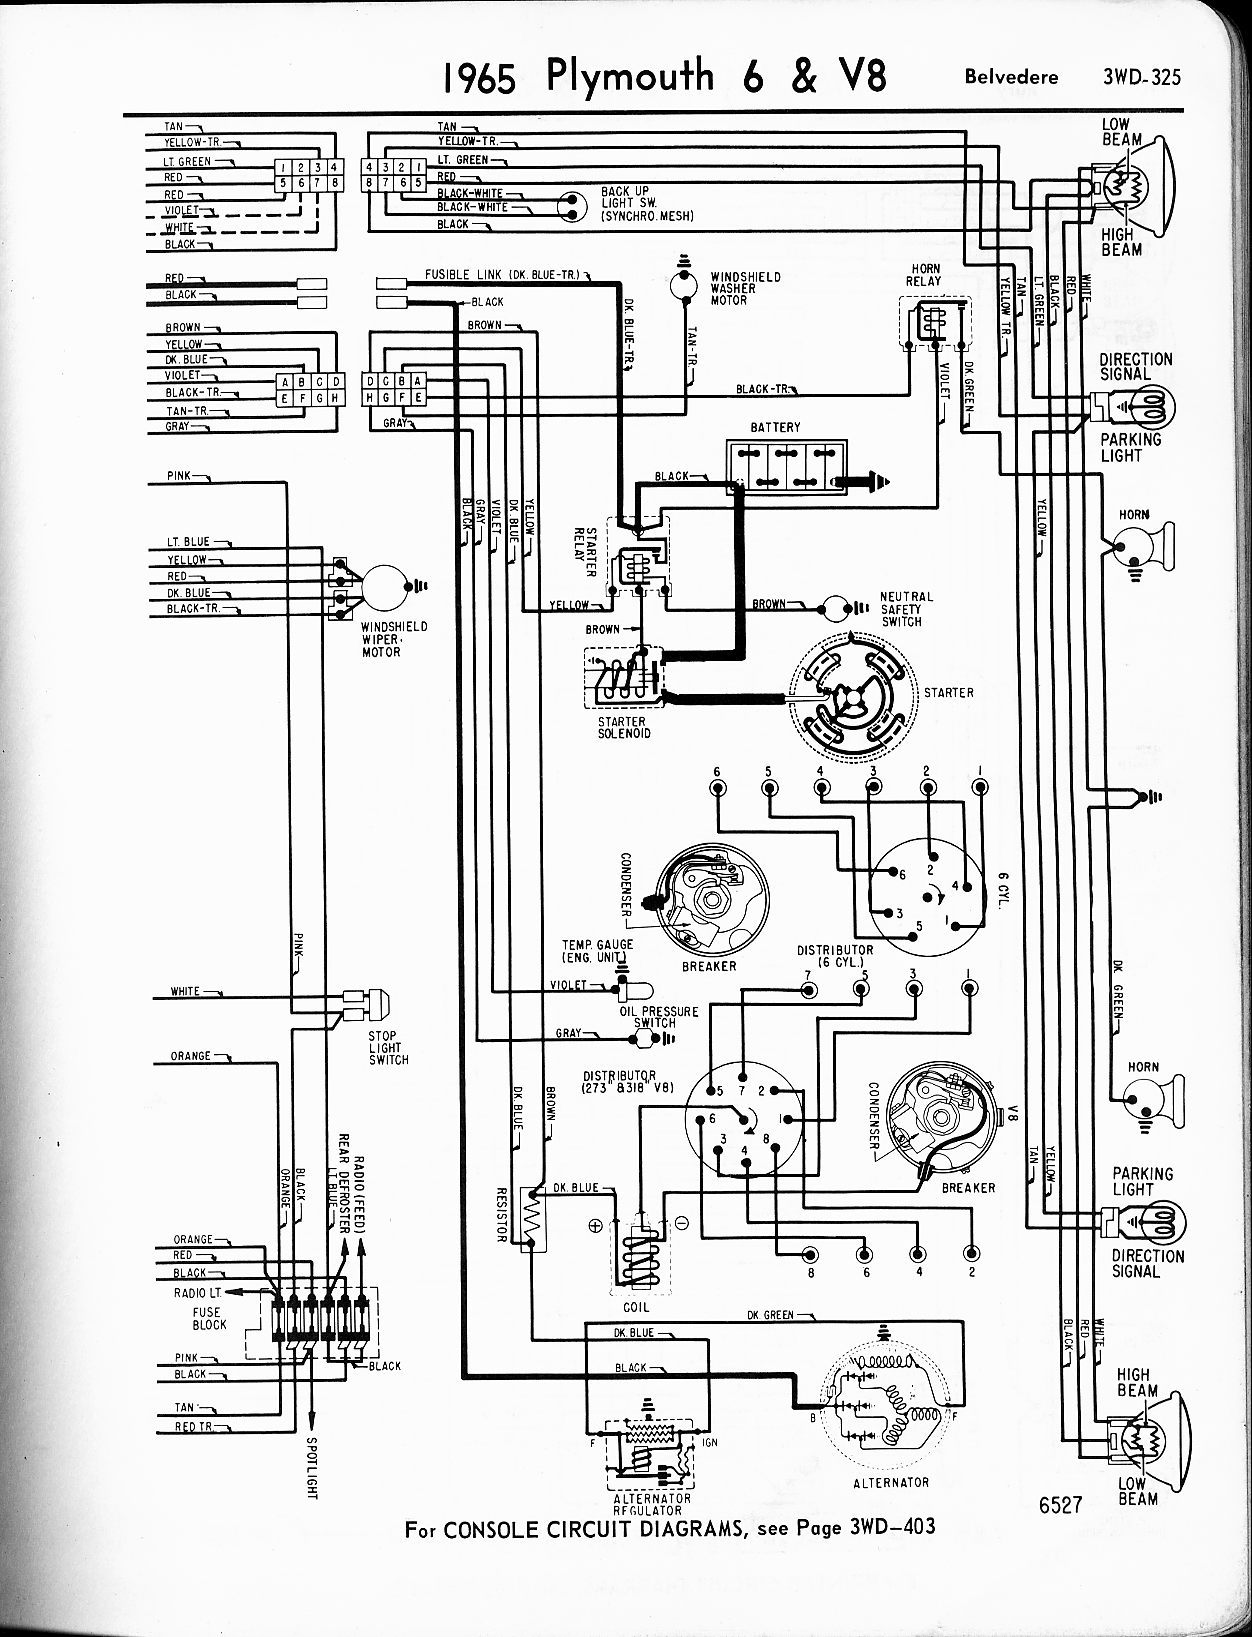 Perfect Jcb 2cx Electrical Diagram Picture Collection - Everything ...